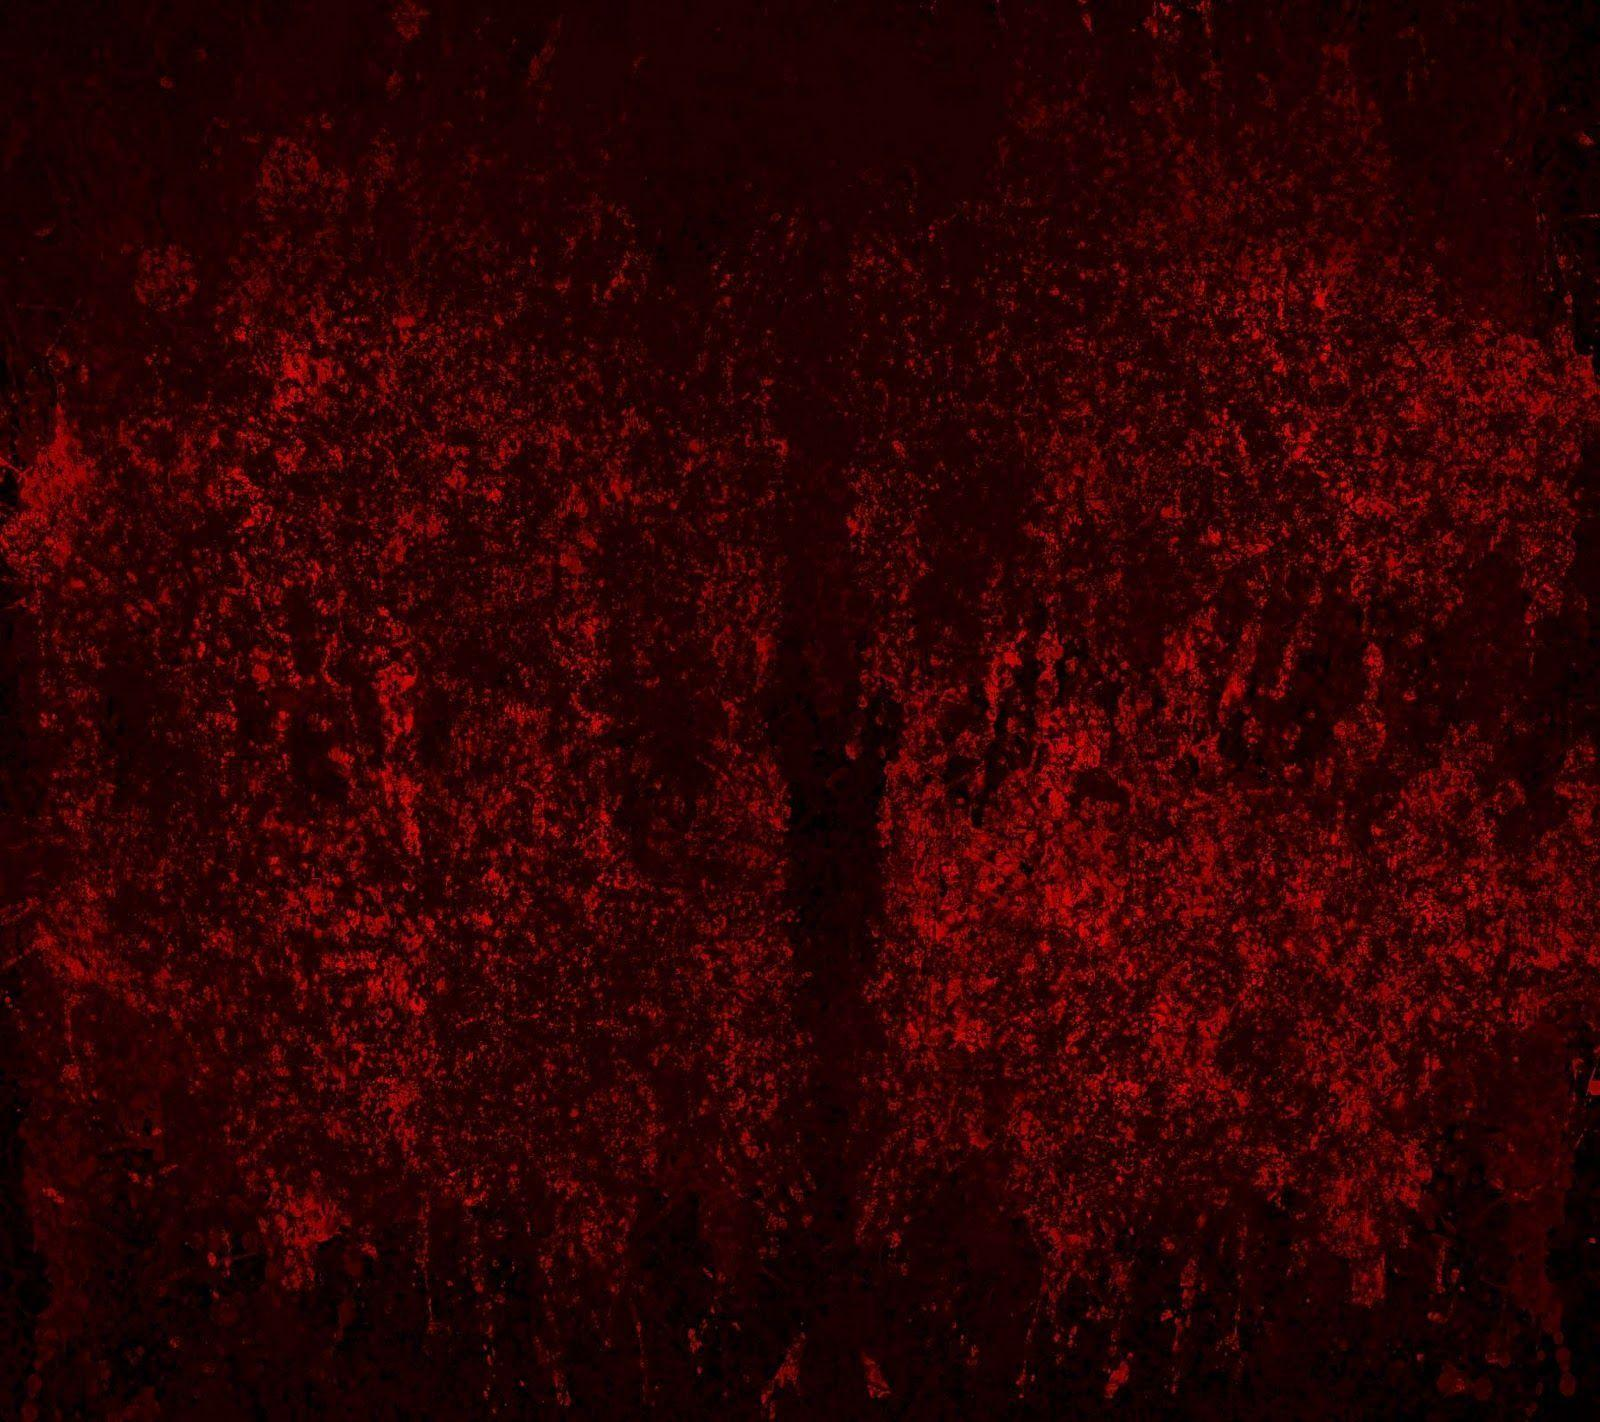 Bloody Backgrounds Wallpaper Cave HD Wallpapers Download Free Images Wallpaper [1000image.com]